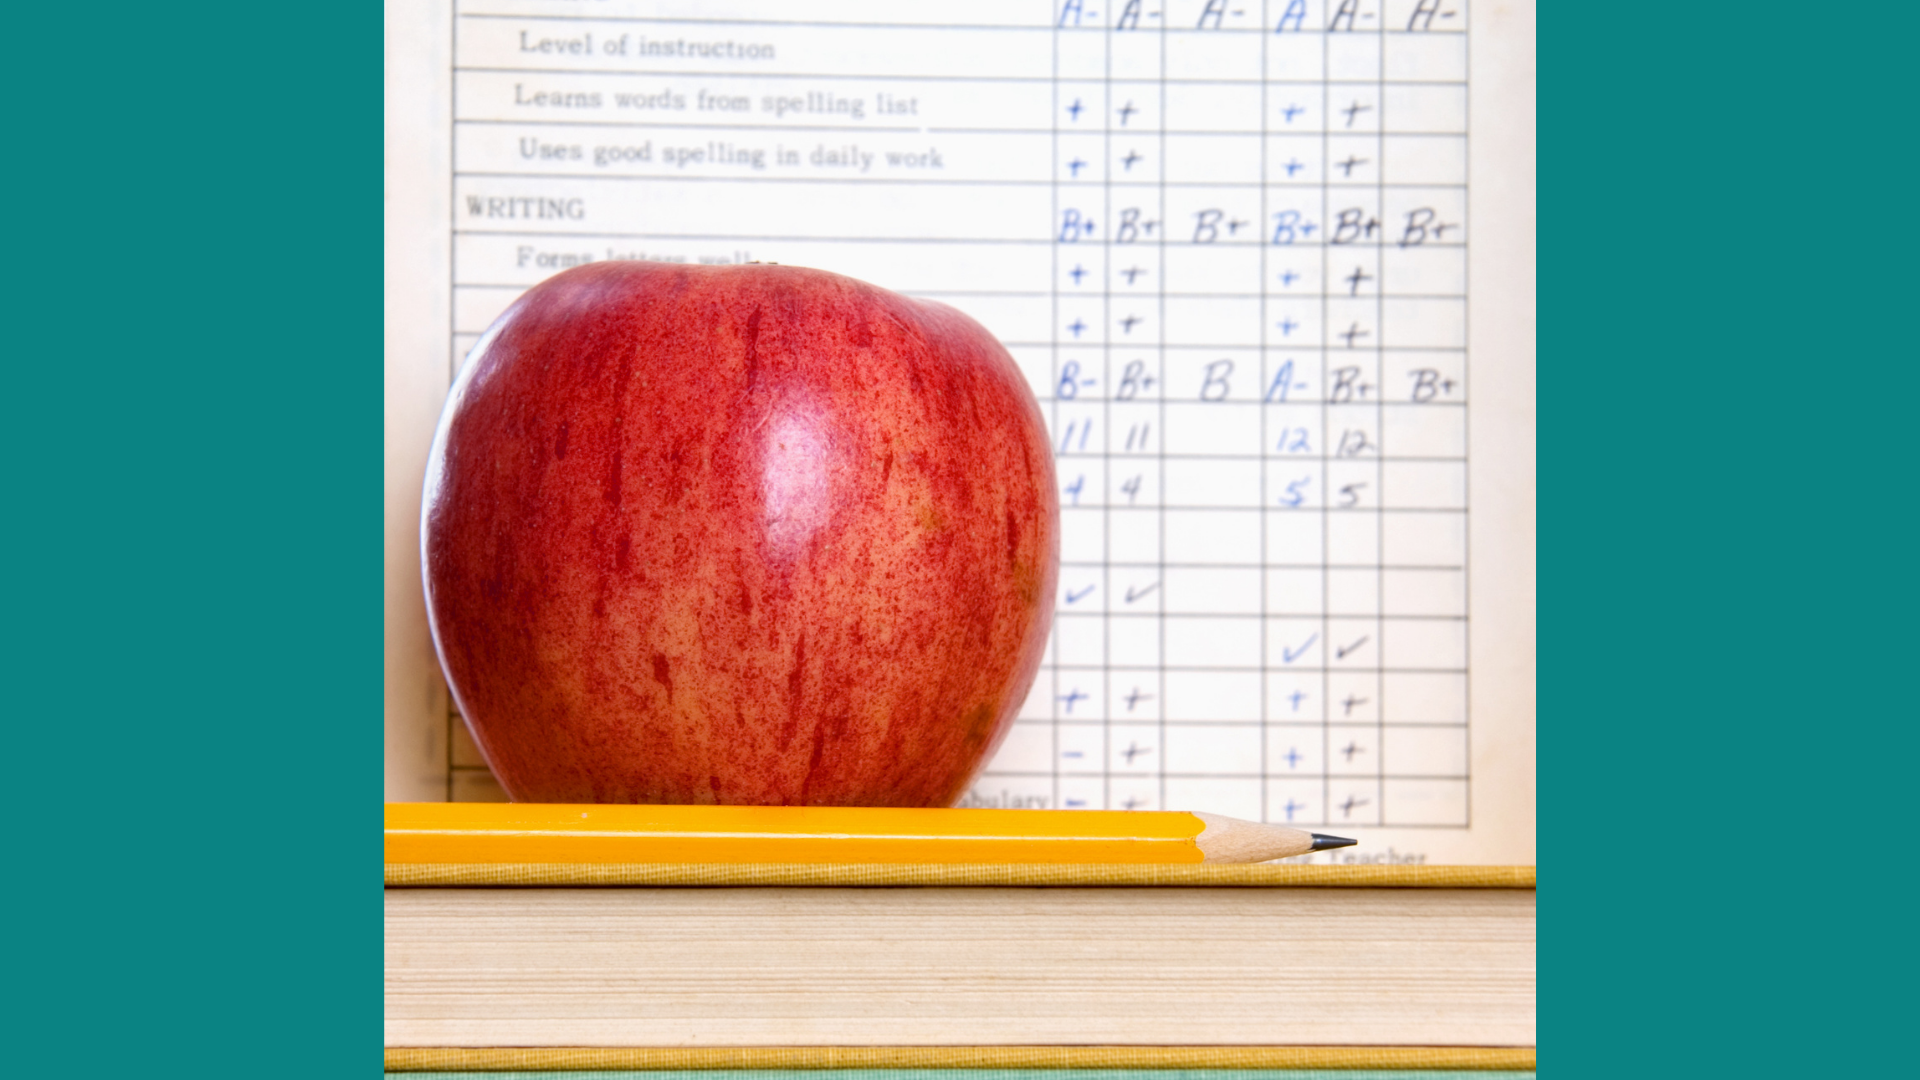 Report Card with an apple and a pencil